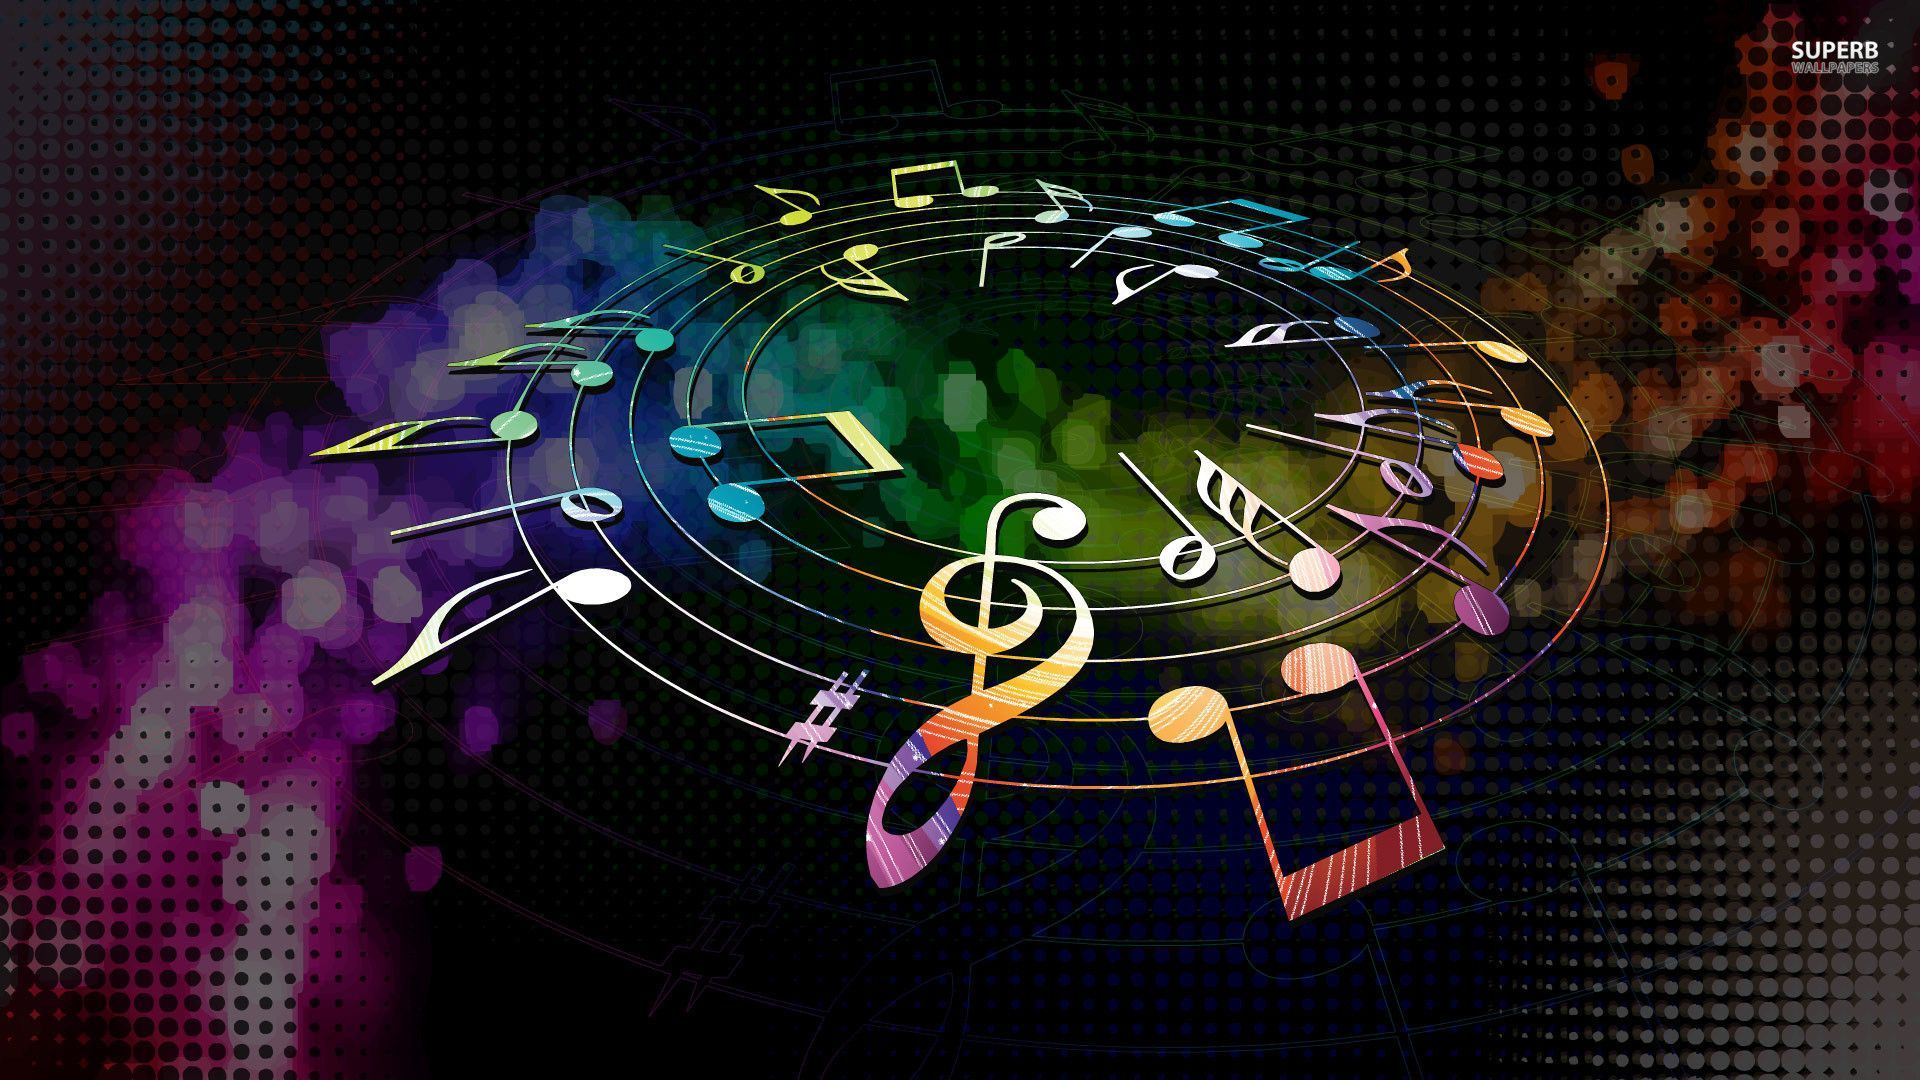 Great Wallpaper Music Mike - 6e6f35d723464f68507ab11e3dede21b  Photograph_234124.jpg